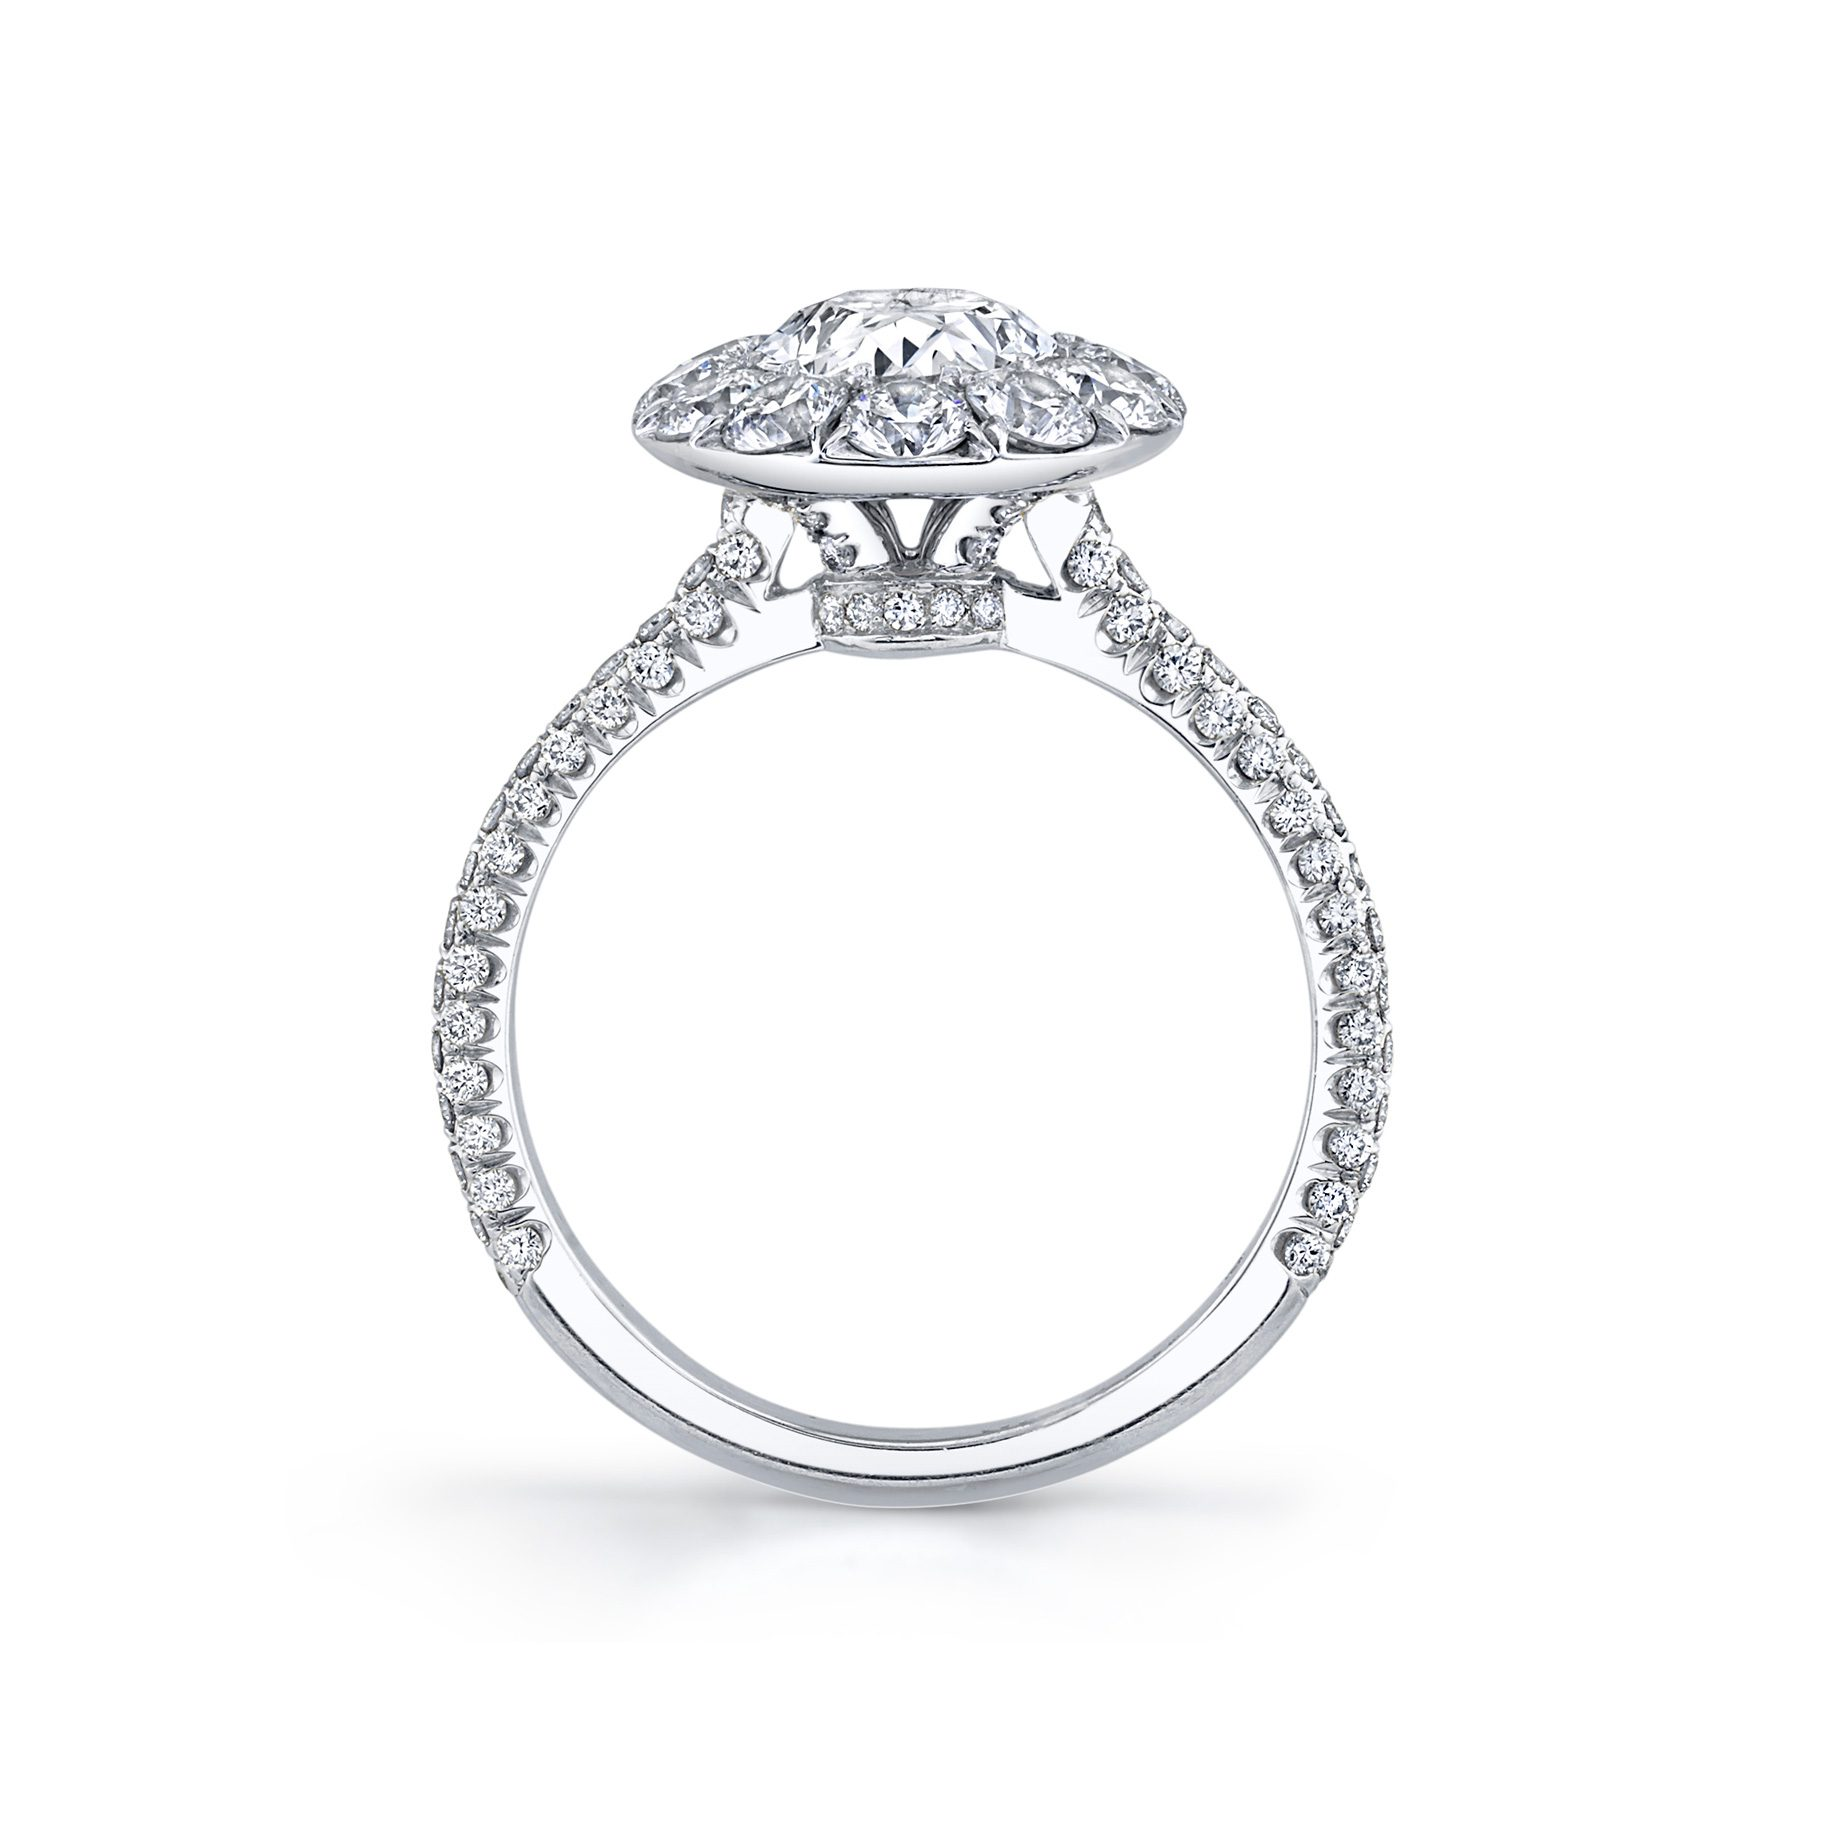 Jacqueline Oval Seamless Solitaire® Engagement Ring with diamond pavé in 18k White Gold Standing View by Oui by Jean Dousset